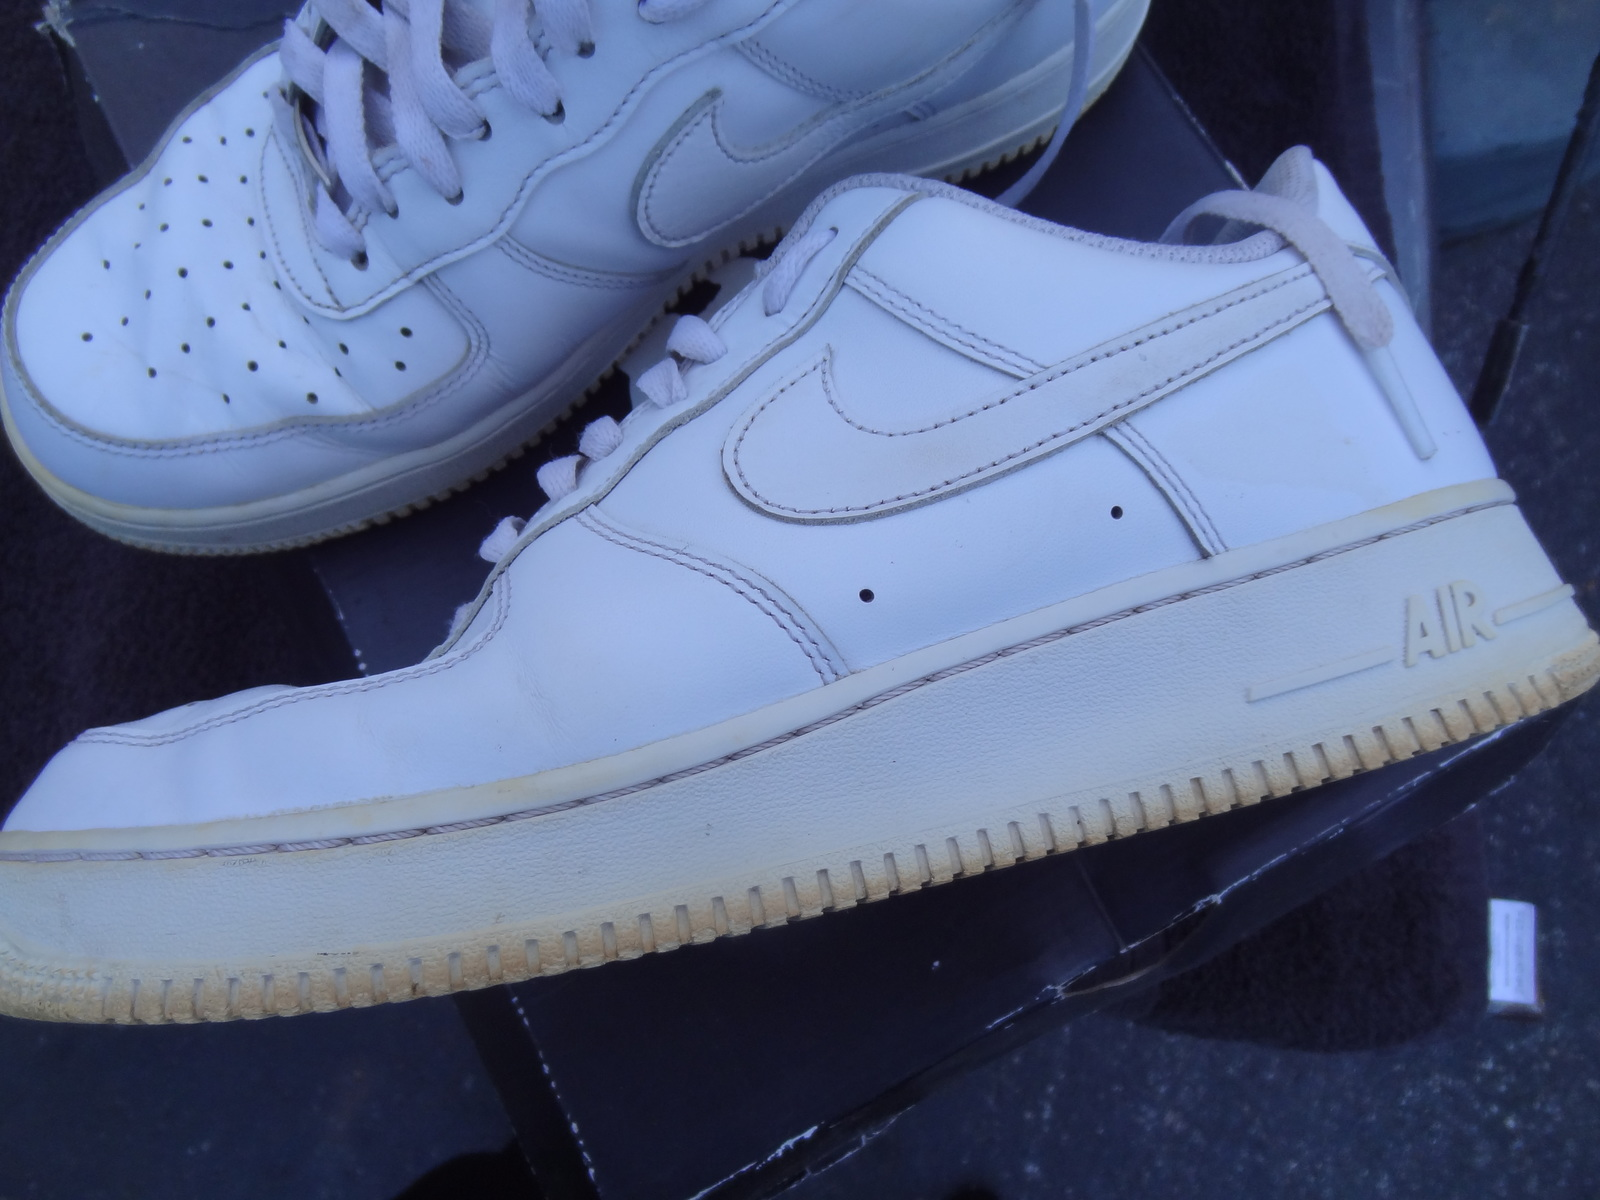 low priced 830a2 16a21 NIKE MEN S SIZE 10 AIR FORCE 1 2014 AF1 LOW WHITE 315122-111 USED